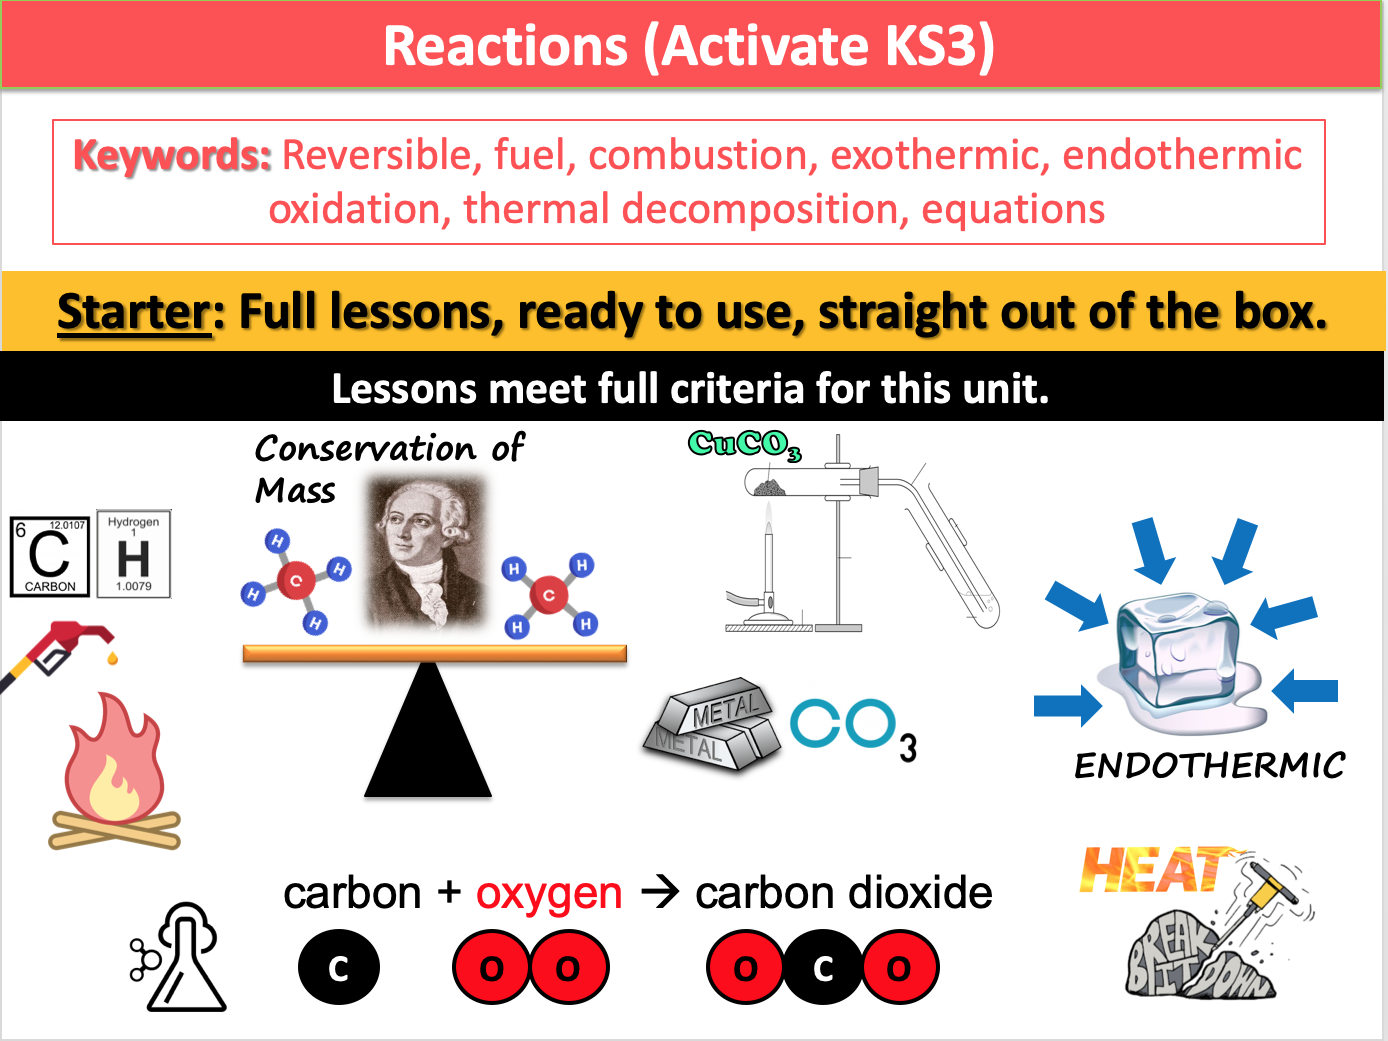 Reactions (Activate KS3)